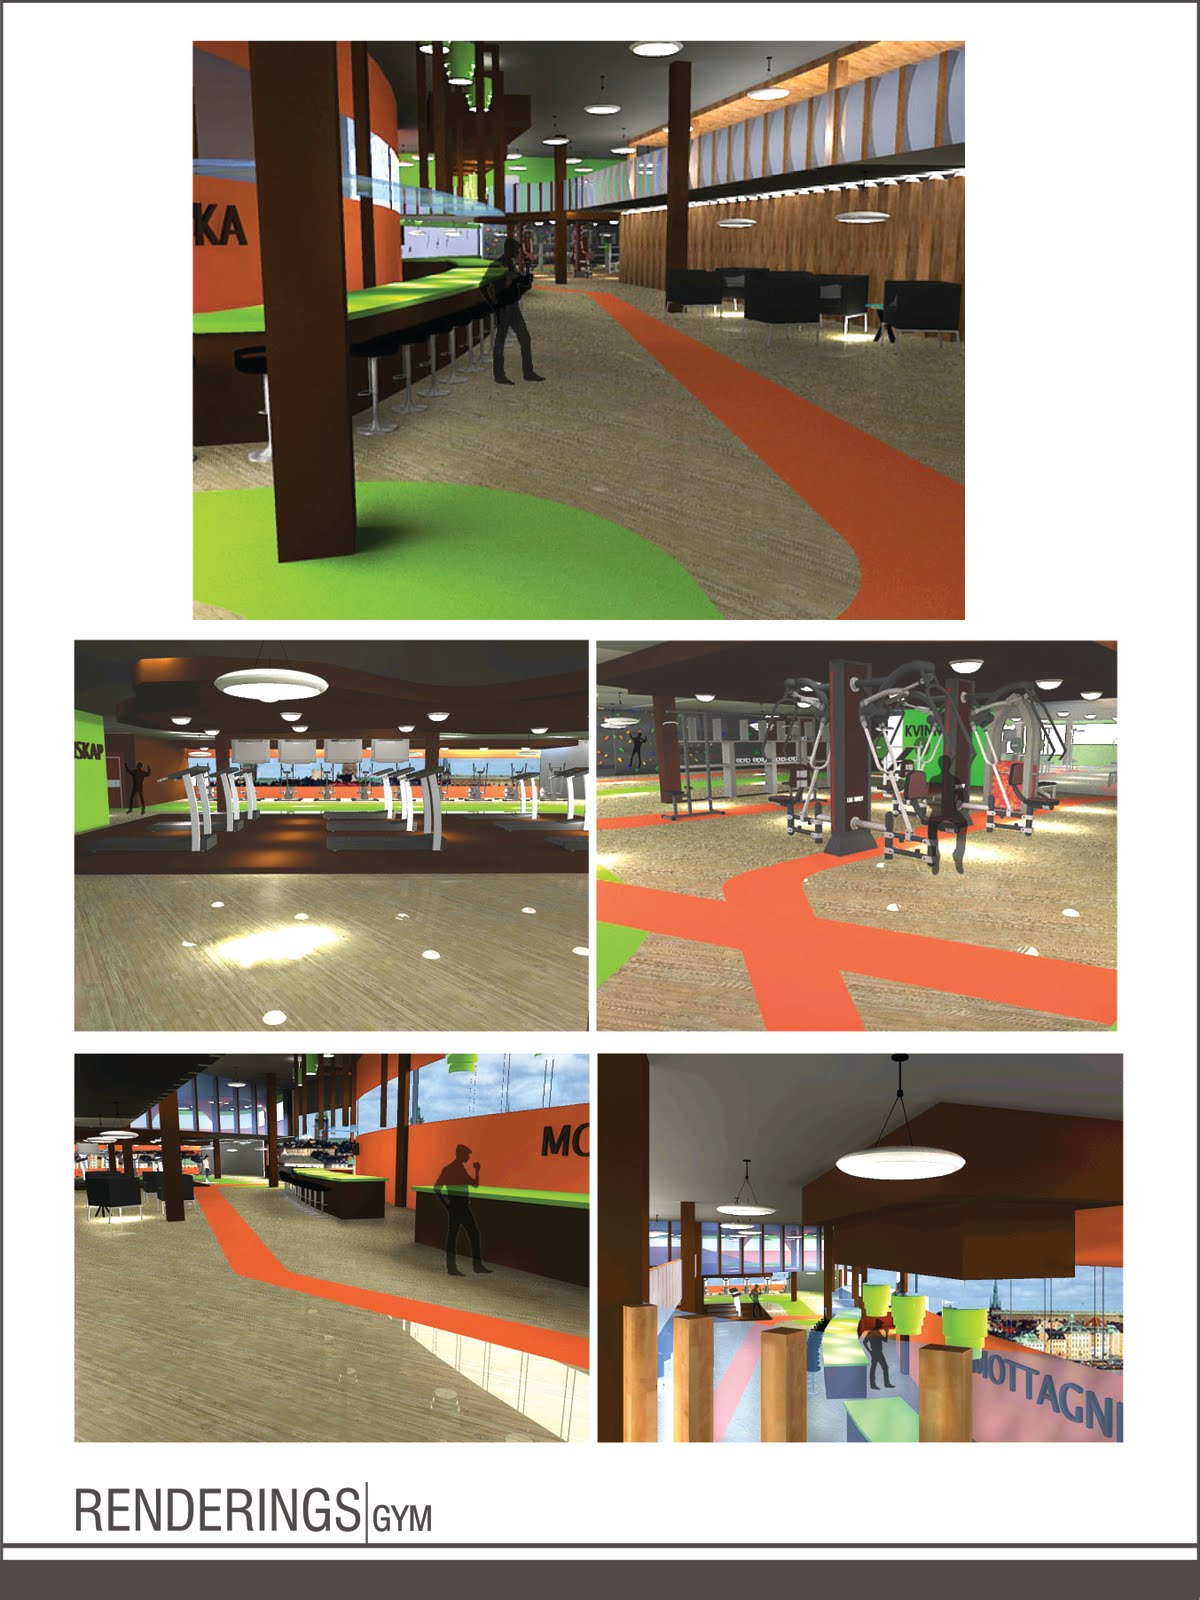 Helix Design, Inc: INTERIOR RENDERINGS: GYM